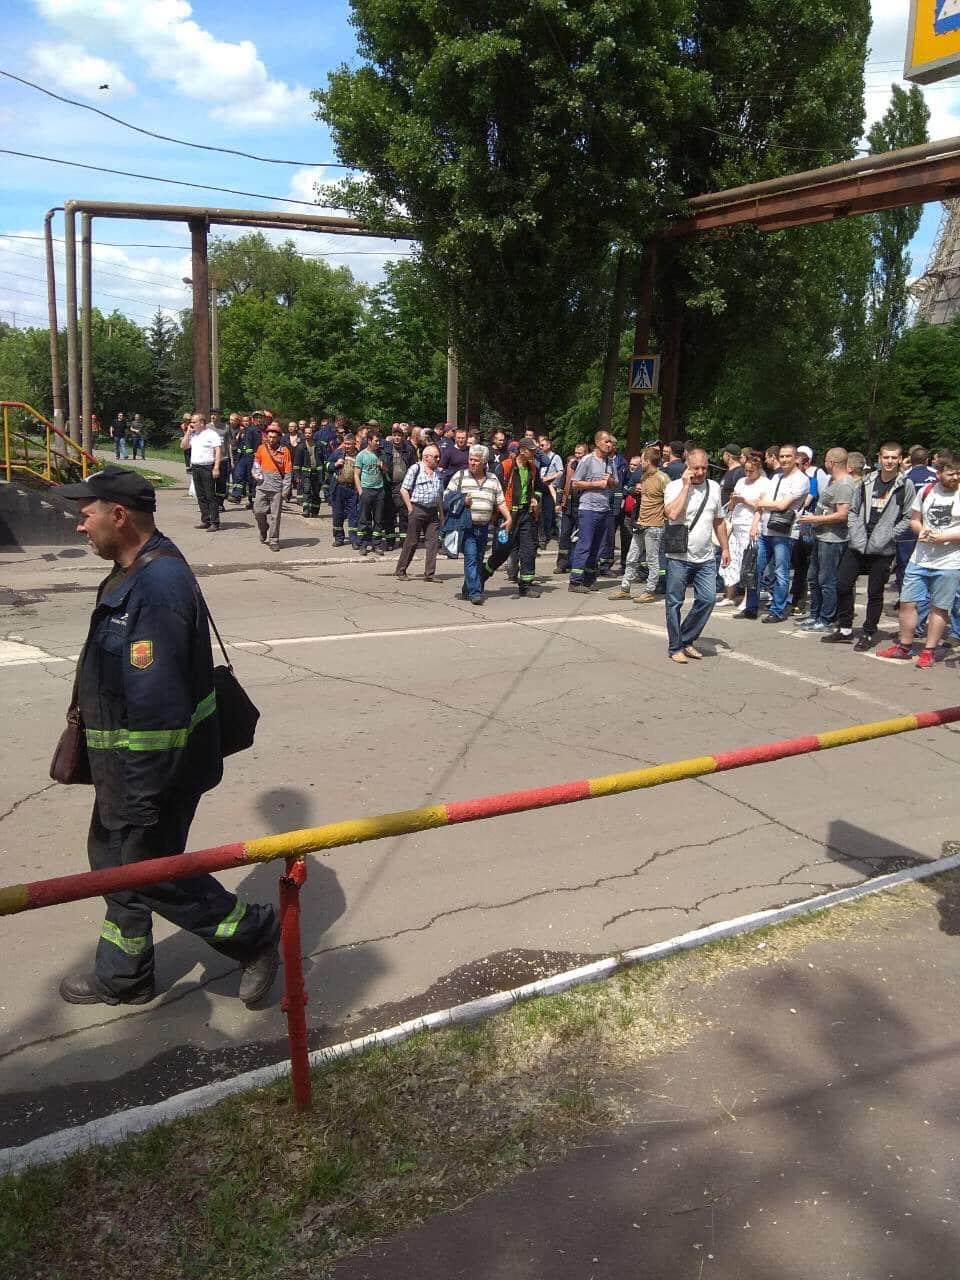 Ukraine: ArcelorMittal workers protest unsafe conditions and poor wages